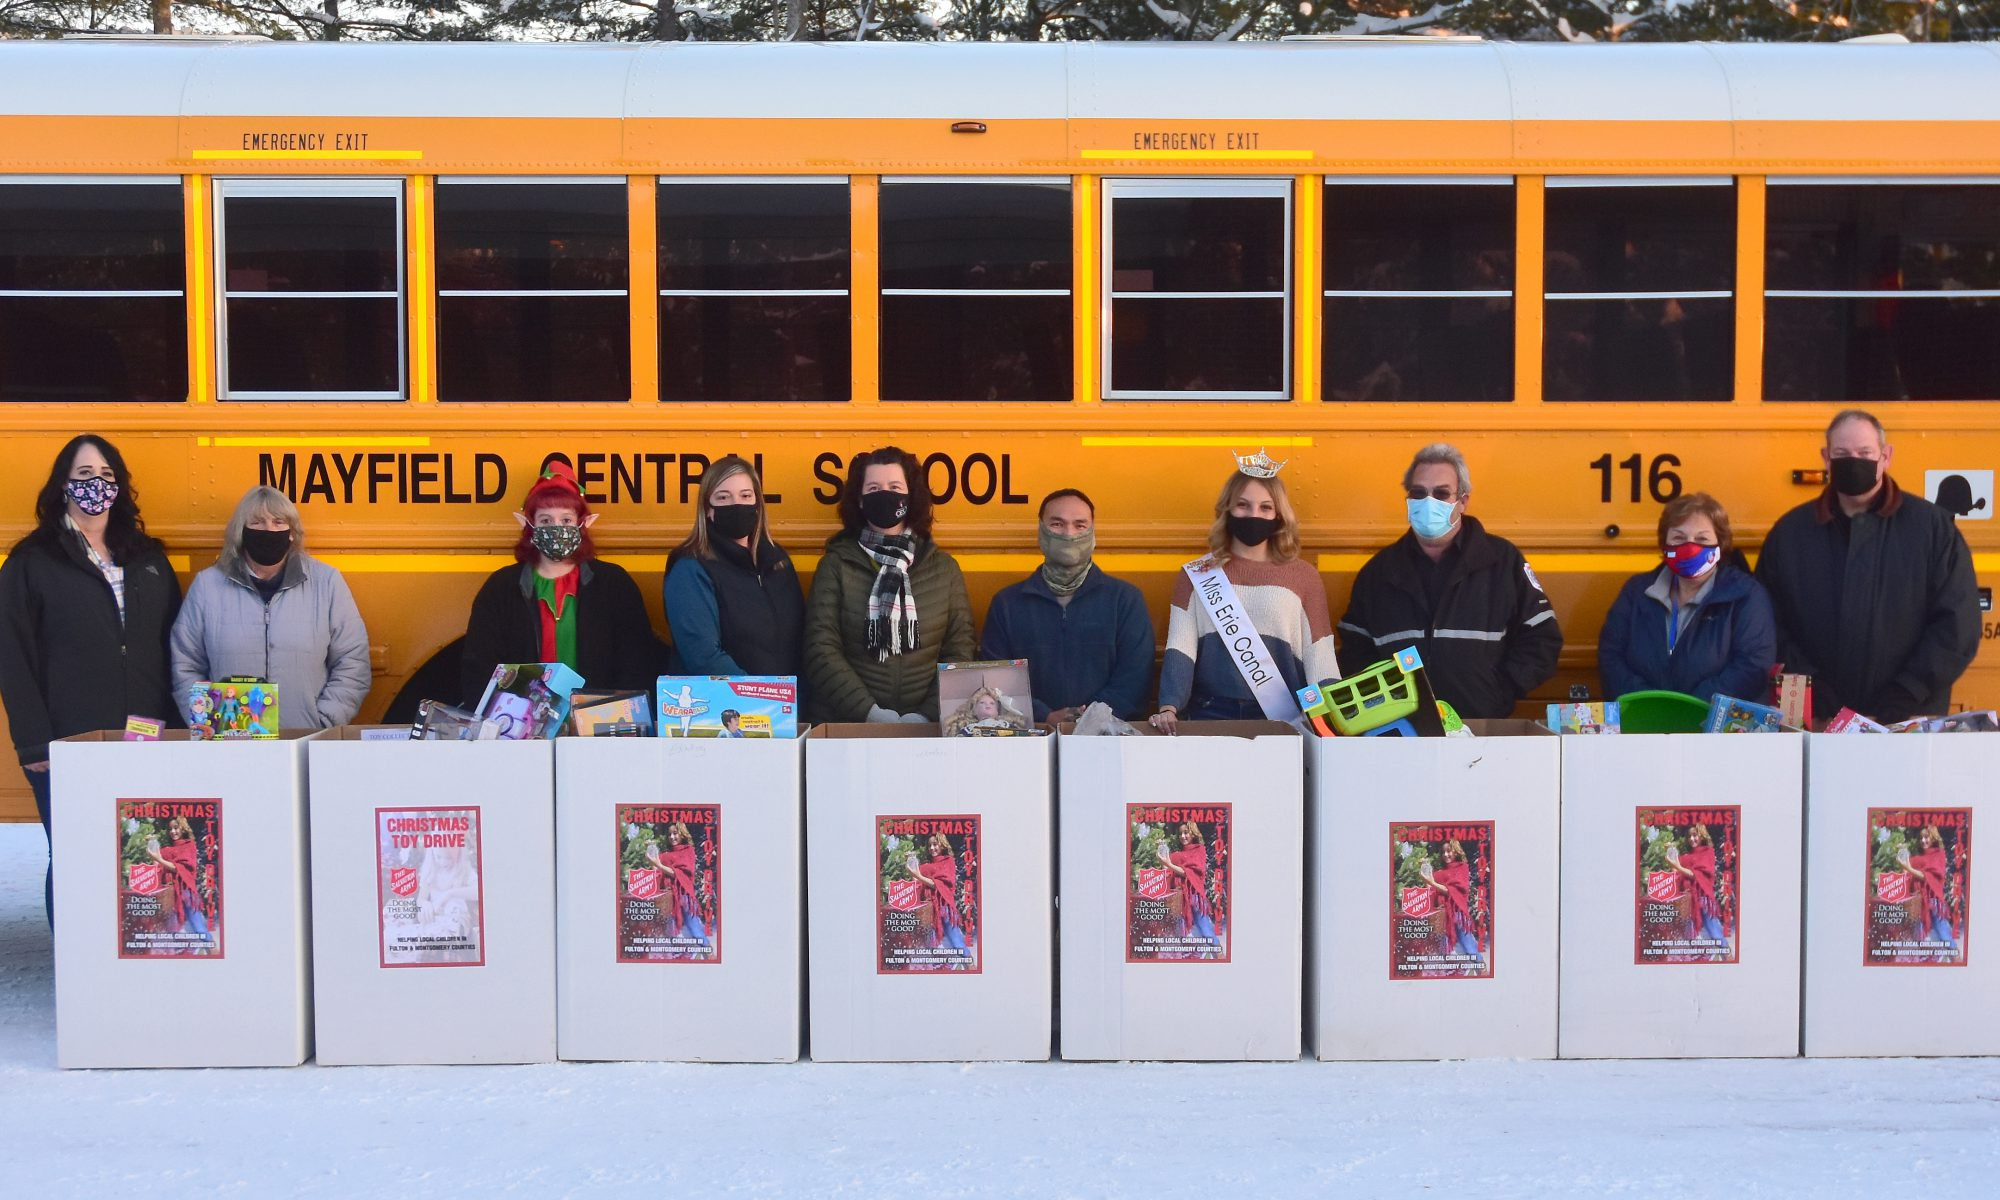 Transportation staff lined up with toys in front of a Mayfield bus